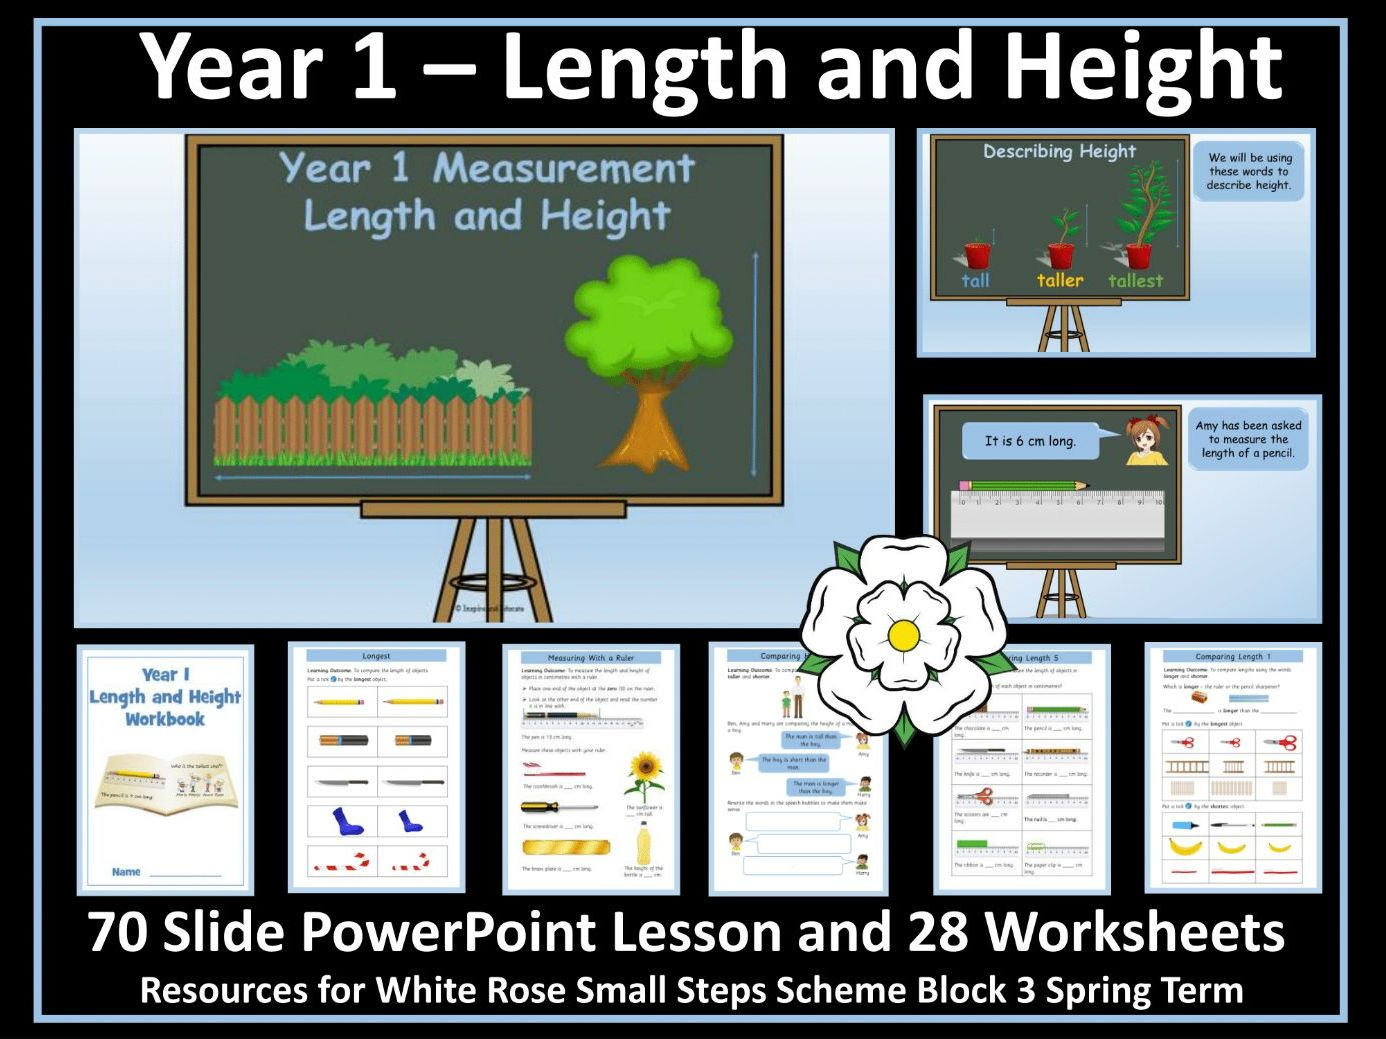 Length and Height Year 1